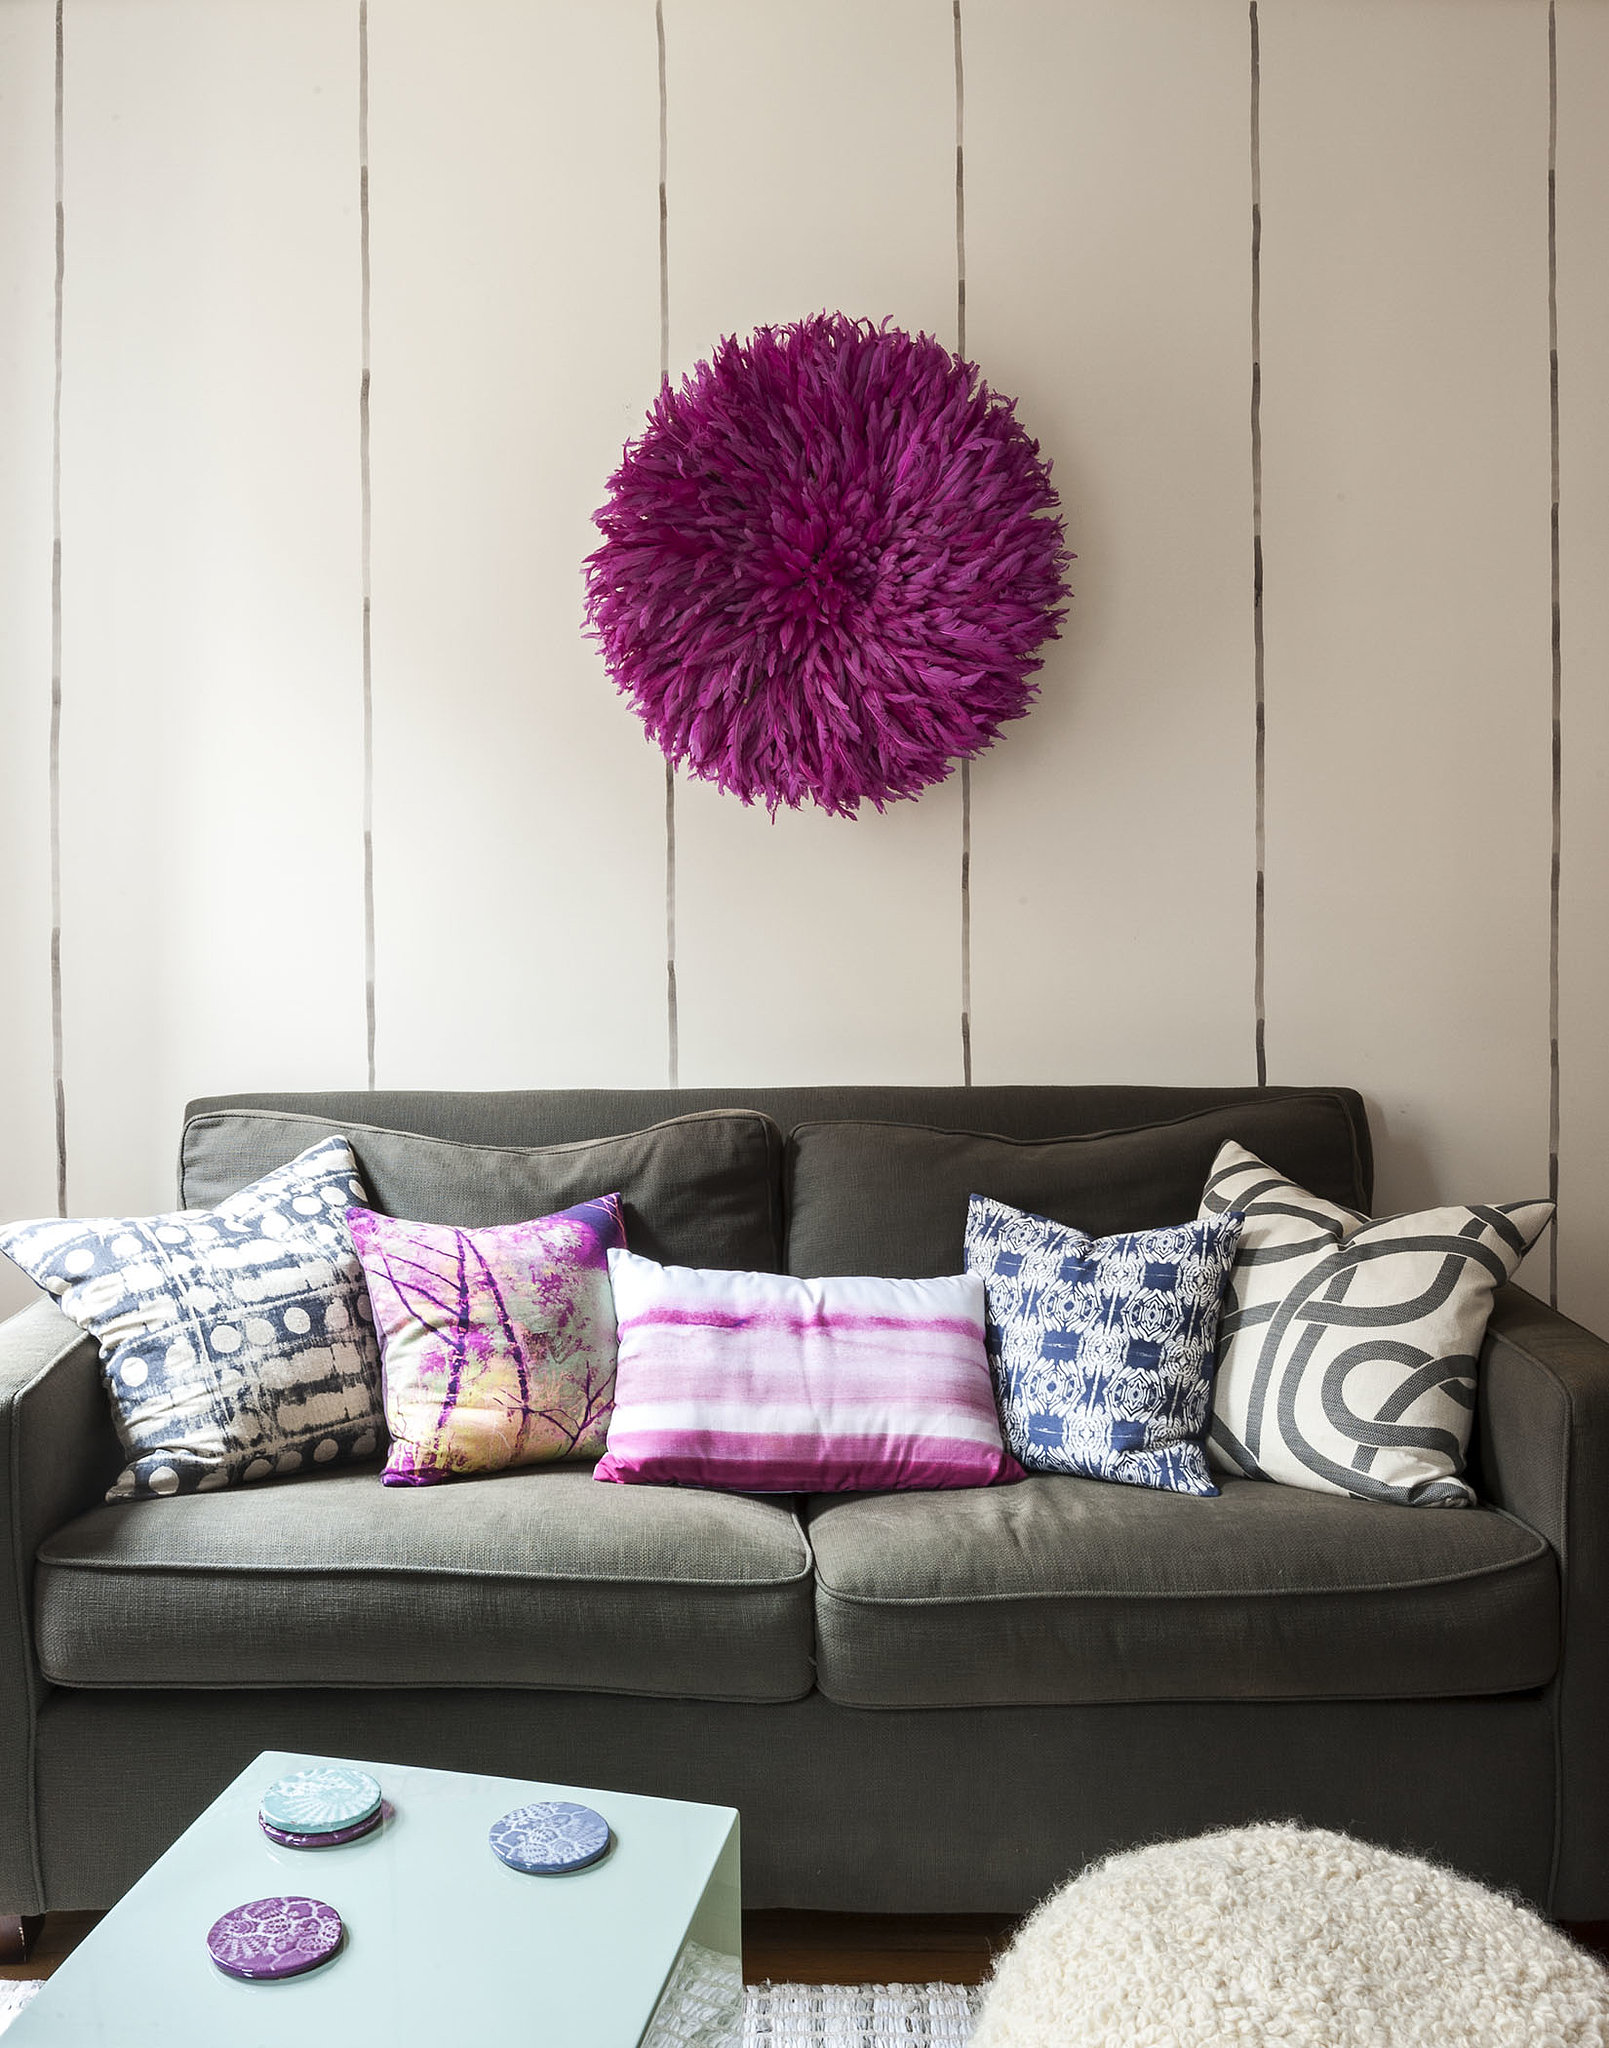 To maximize space, Ali and Lindsay choose side and coffee tables that double as stools for additional seating. To add personality, they hung a magenta juju (African feather headdress) above the sofa. Photo by  Matthew Williams via LABLstudio